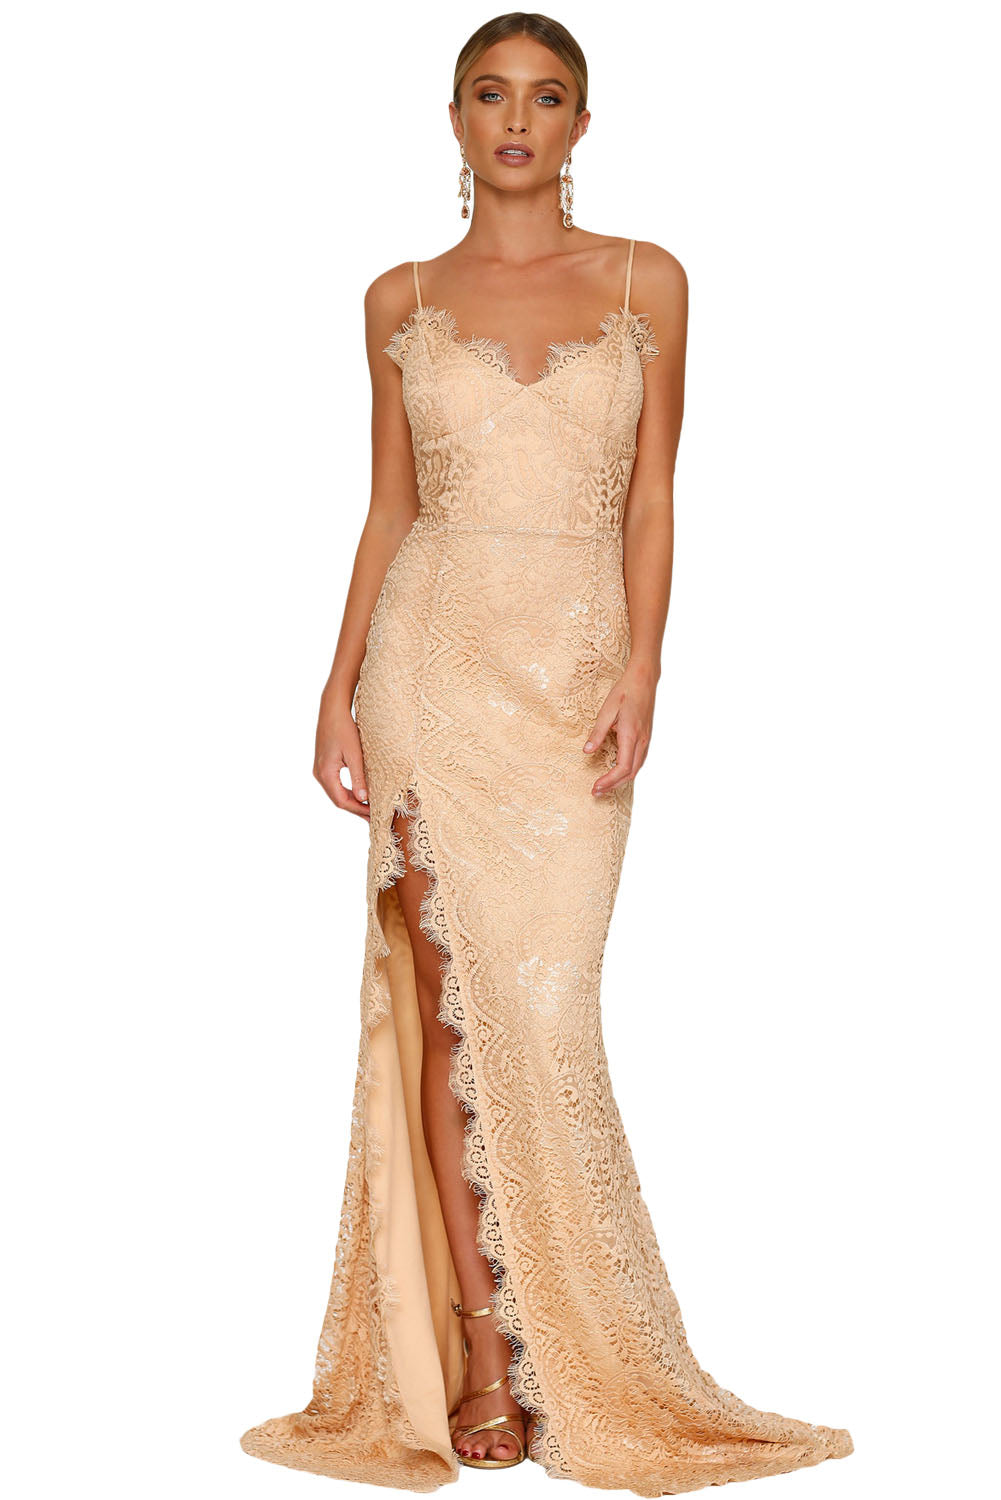 Nude Chic Lace Maxi Dress - MSCOOCO